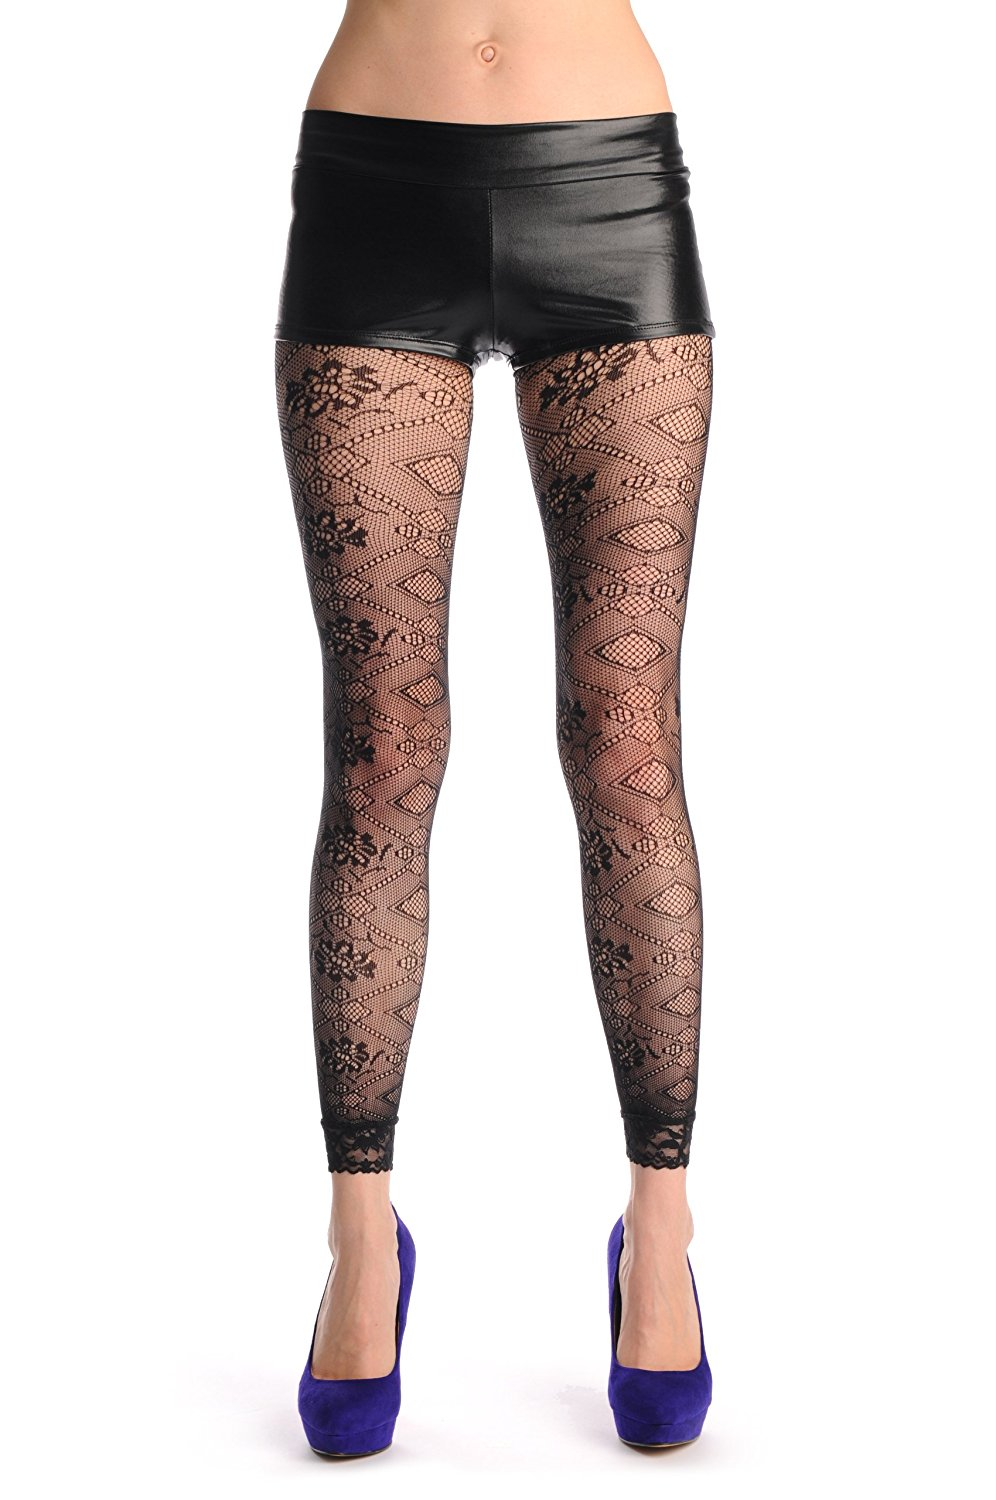 da9881dfd97e5 Get Quotations · Flowers In Rectangles Footless Fishnet - Tights Footless